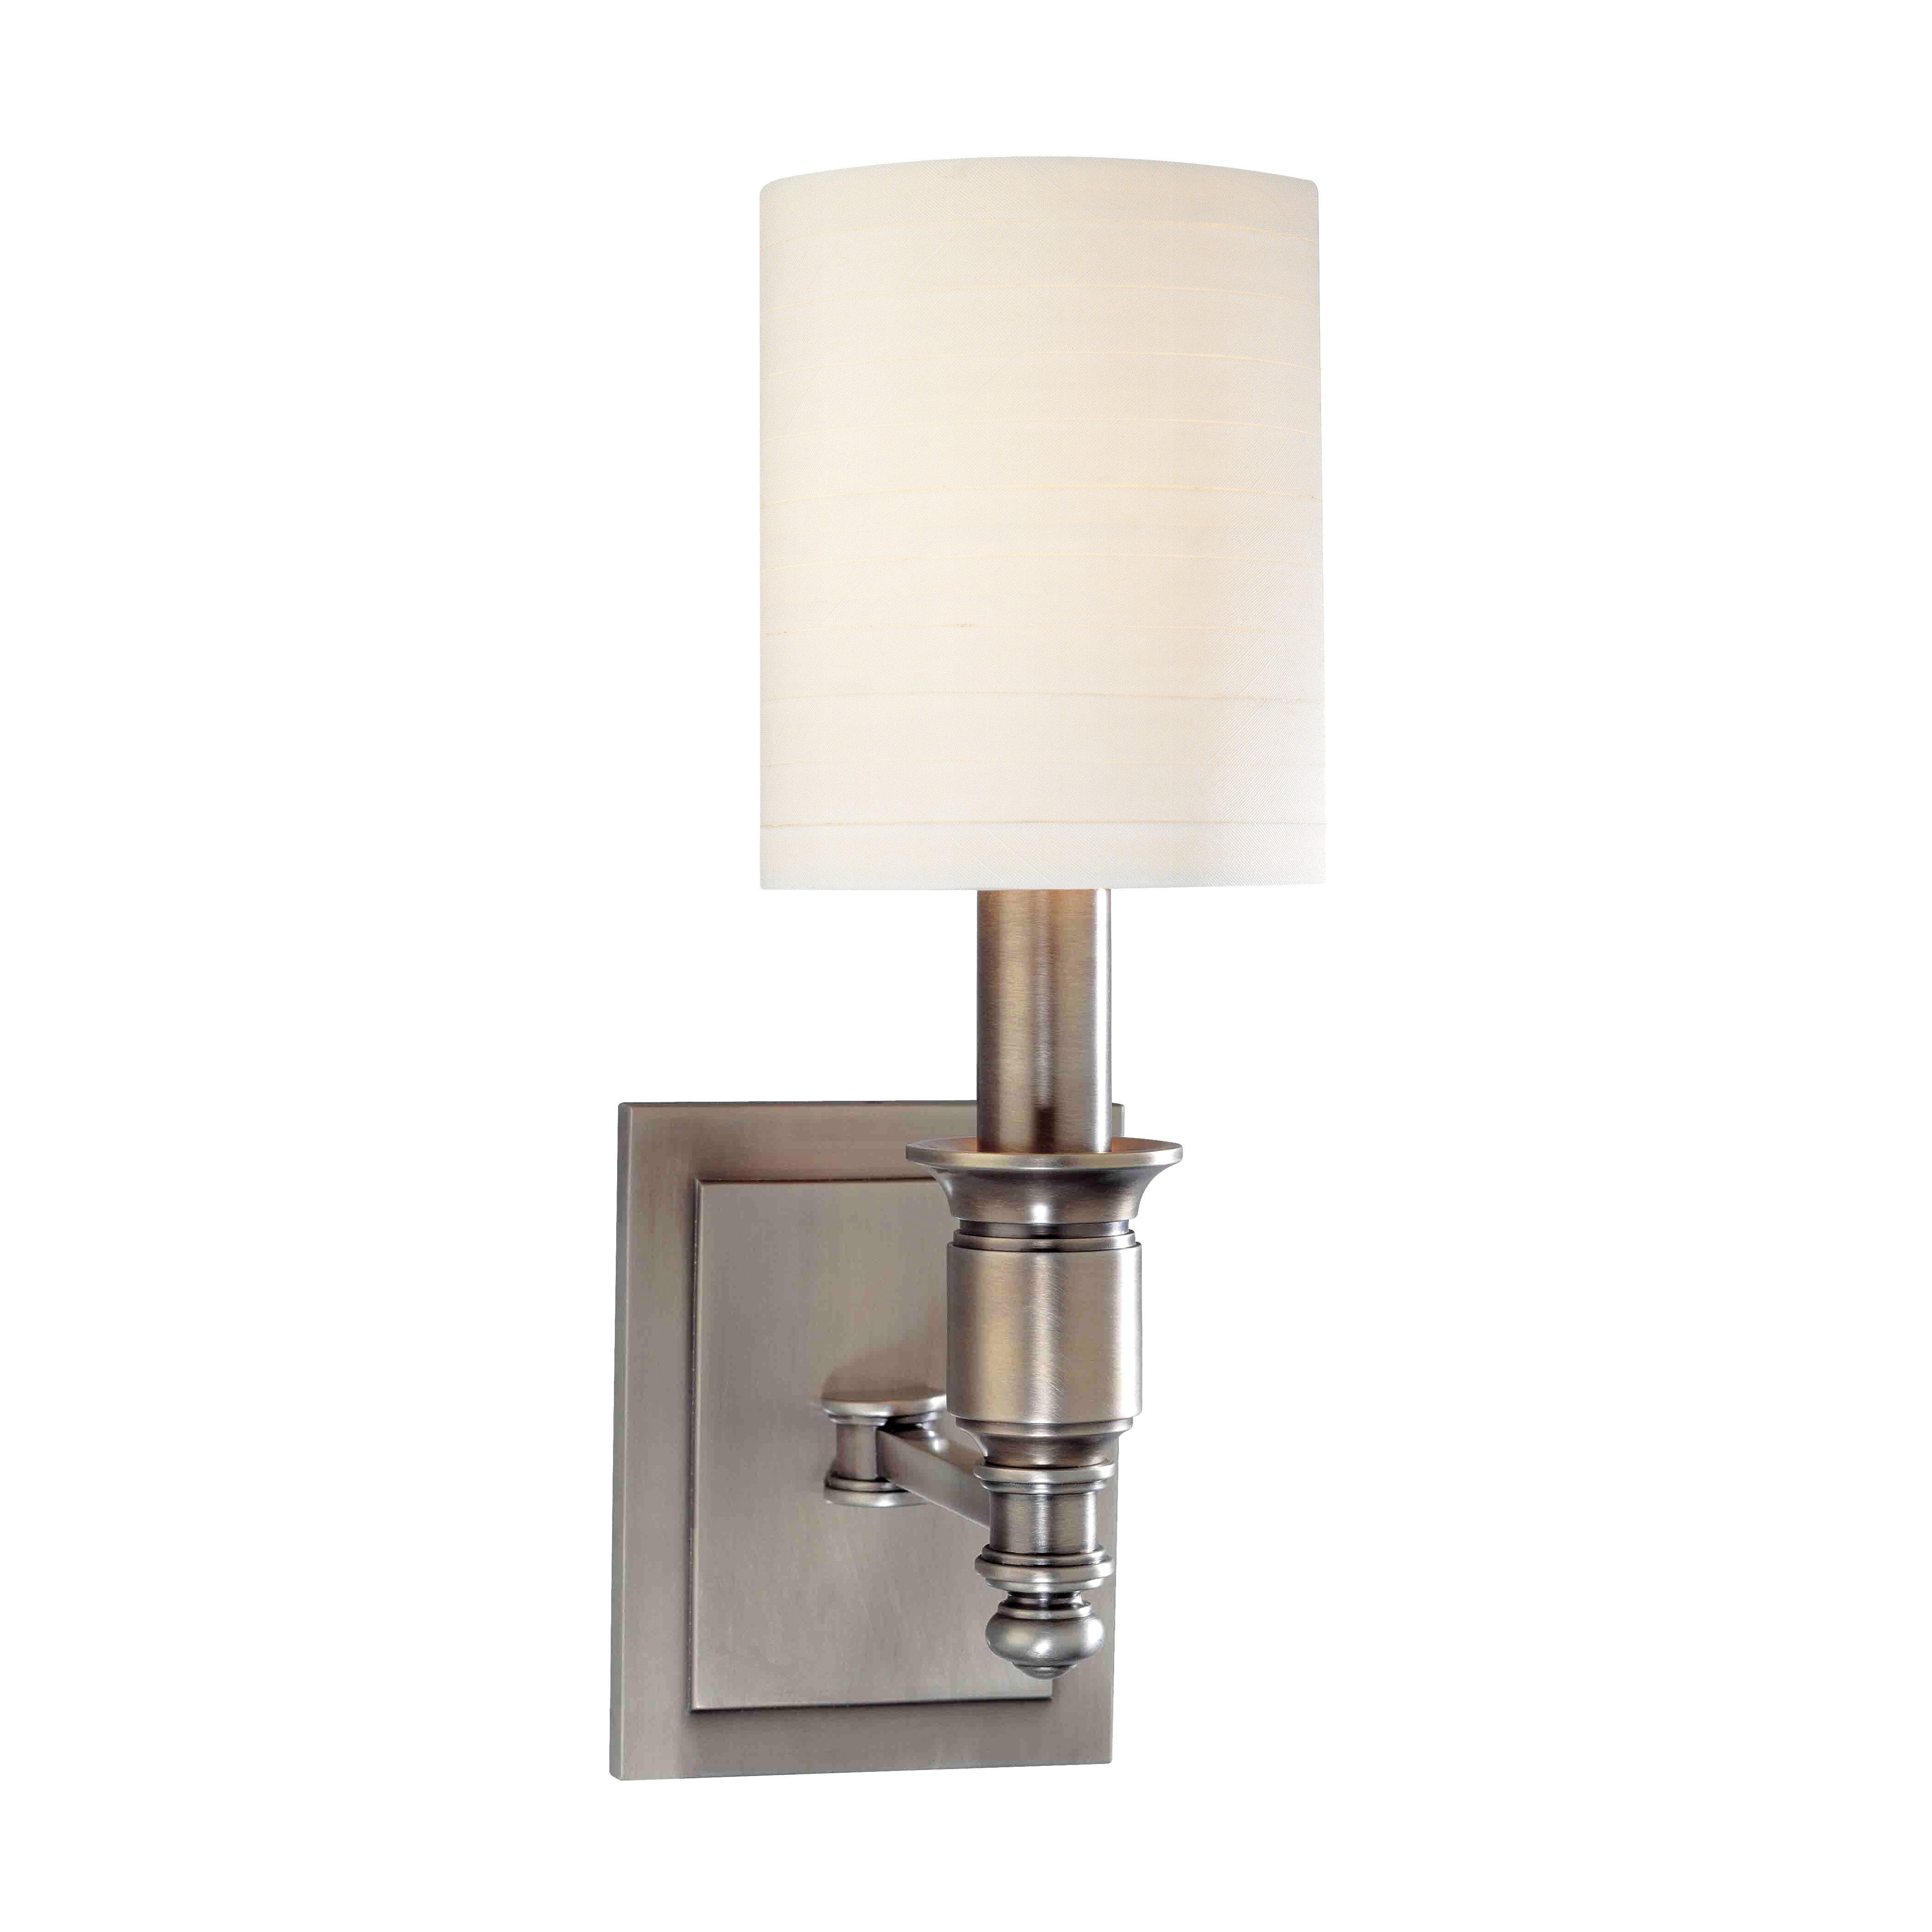 Hudson Valley Lighting Whitney 1 Light Wall Sconce & Reviews Wayfair